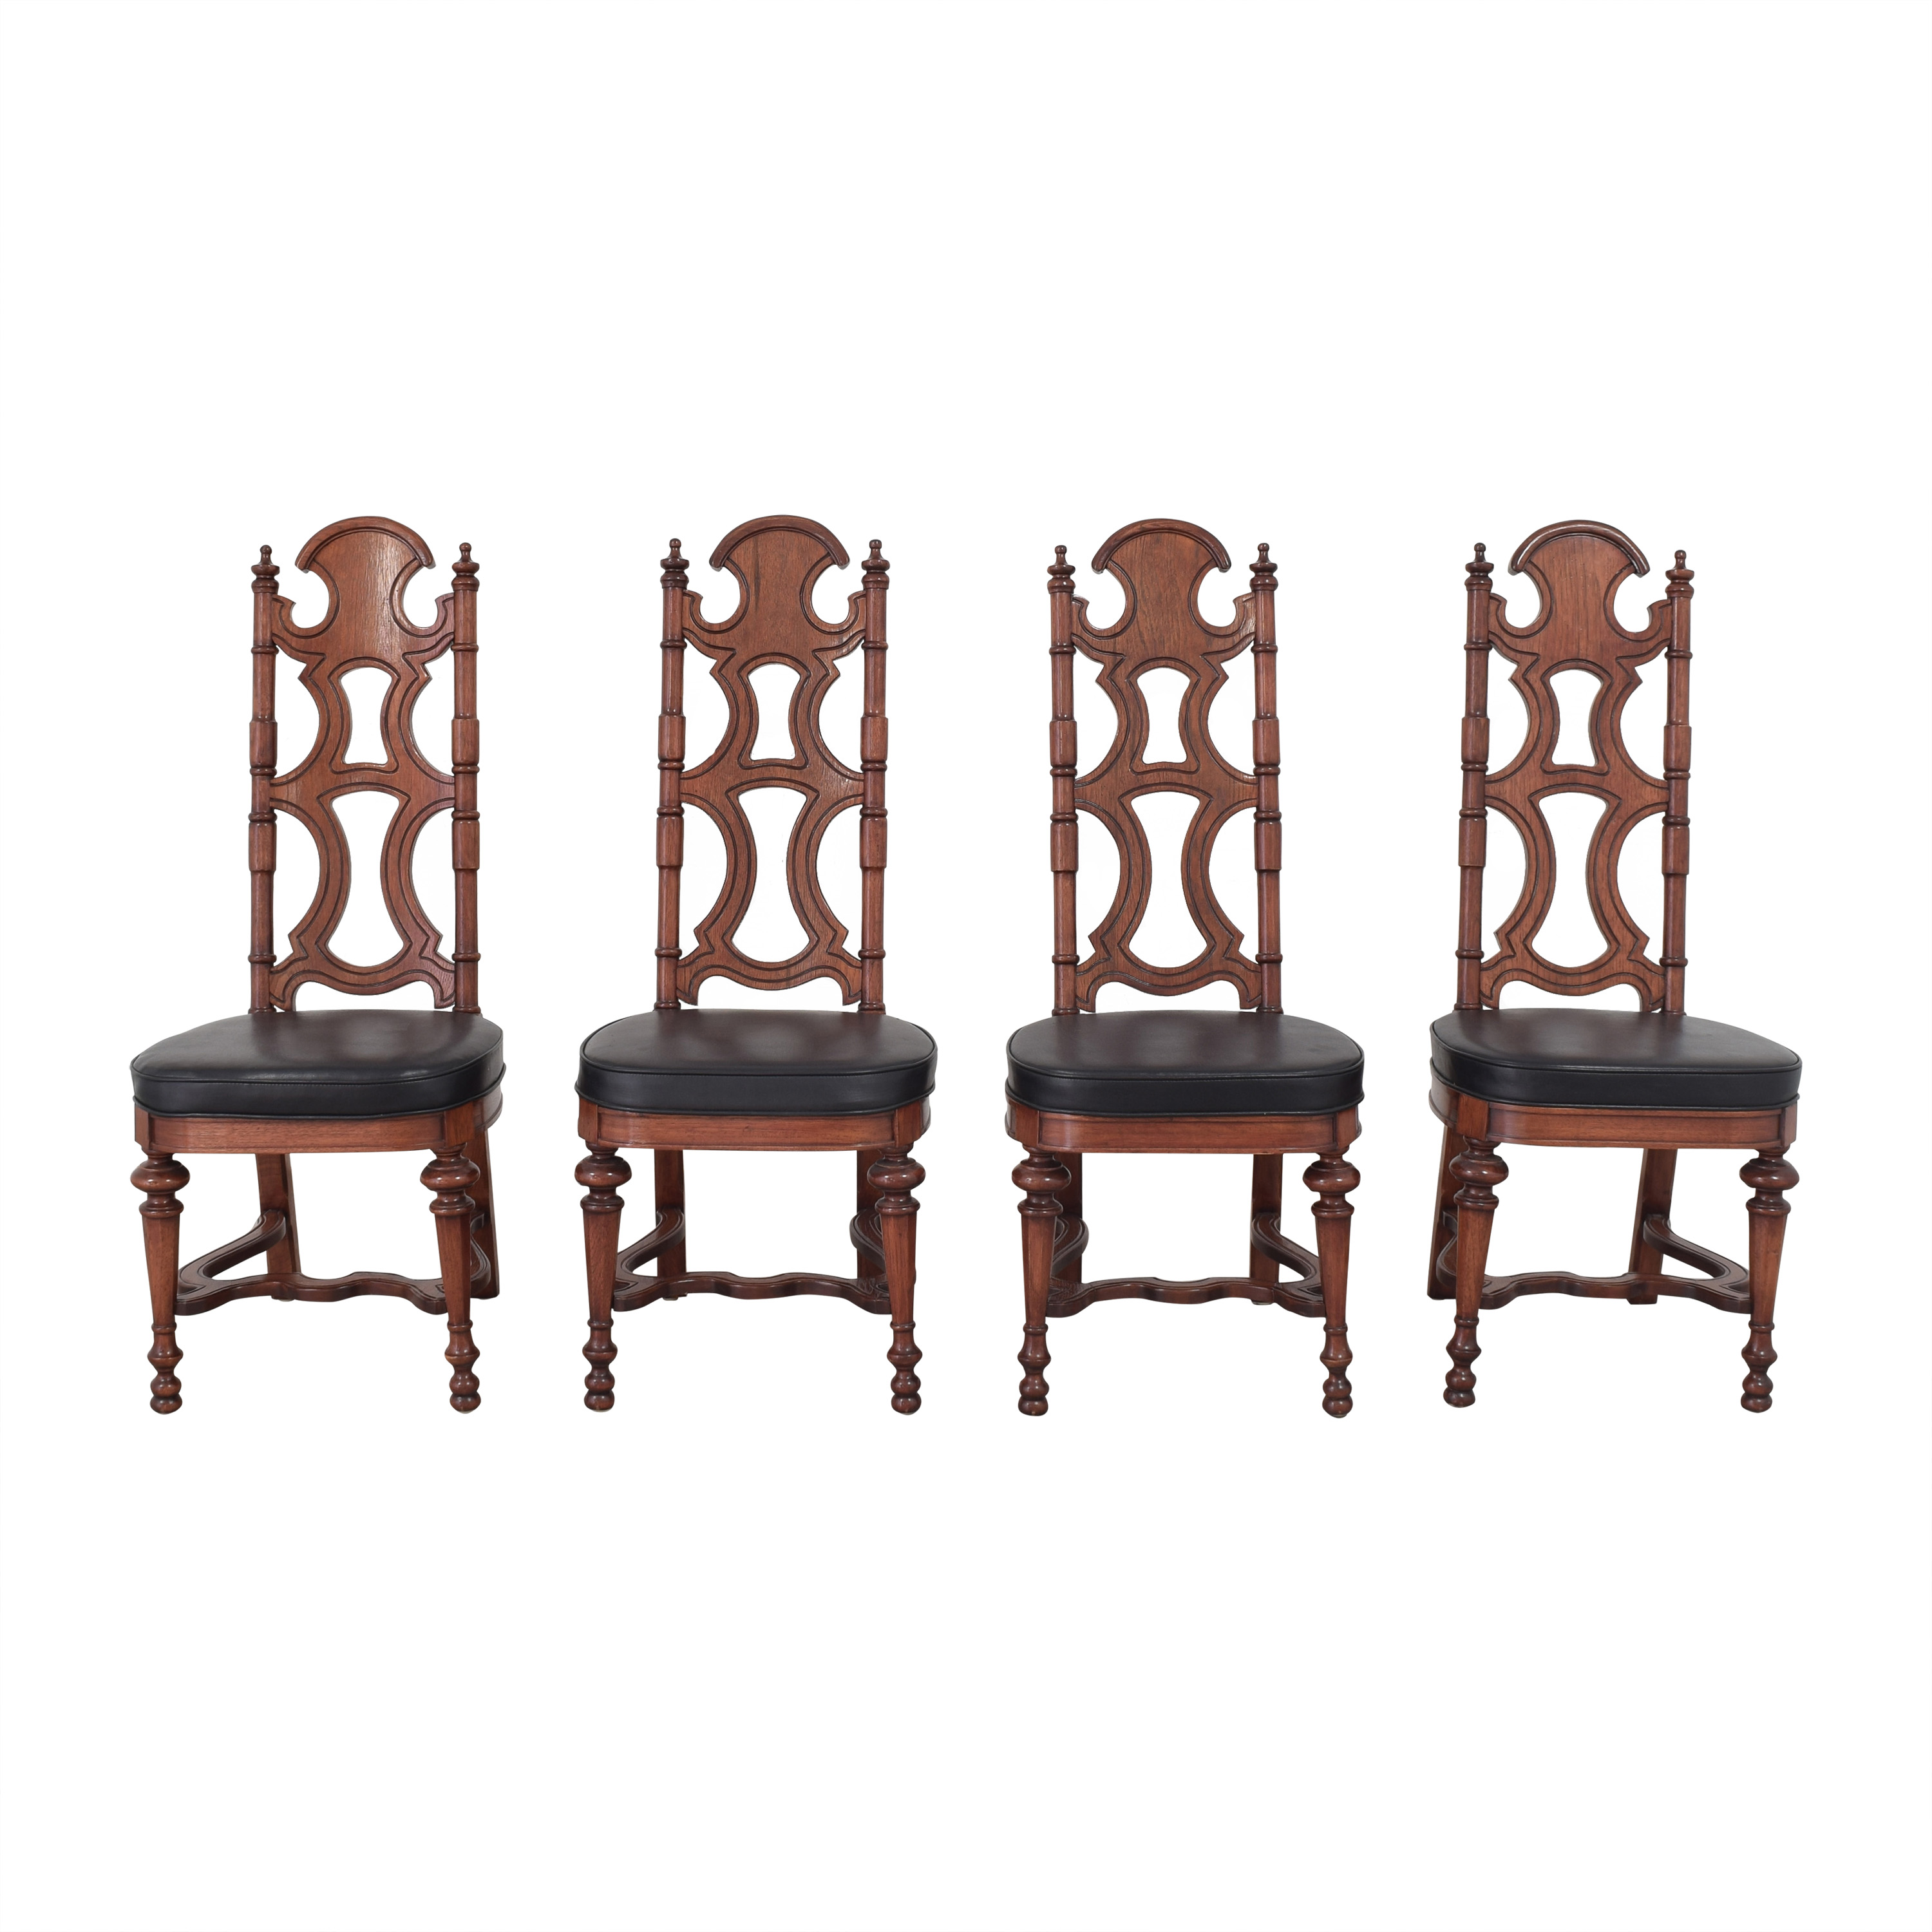 Drexel Drexel High Back Dining Chairs dimensions